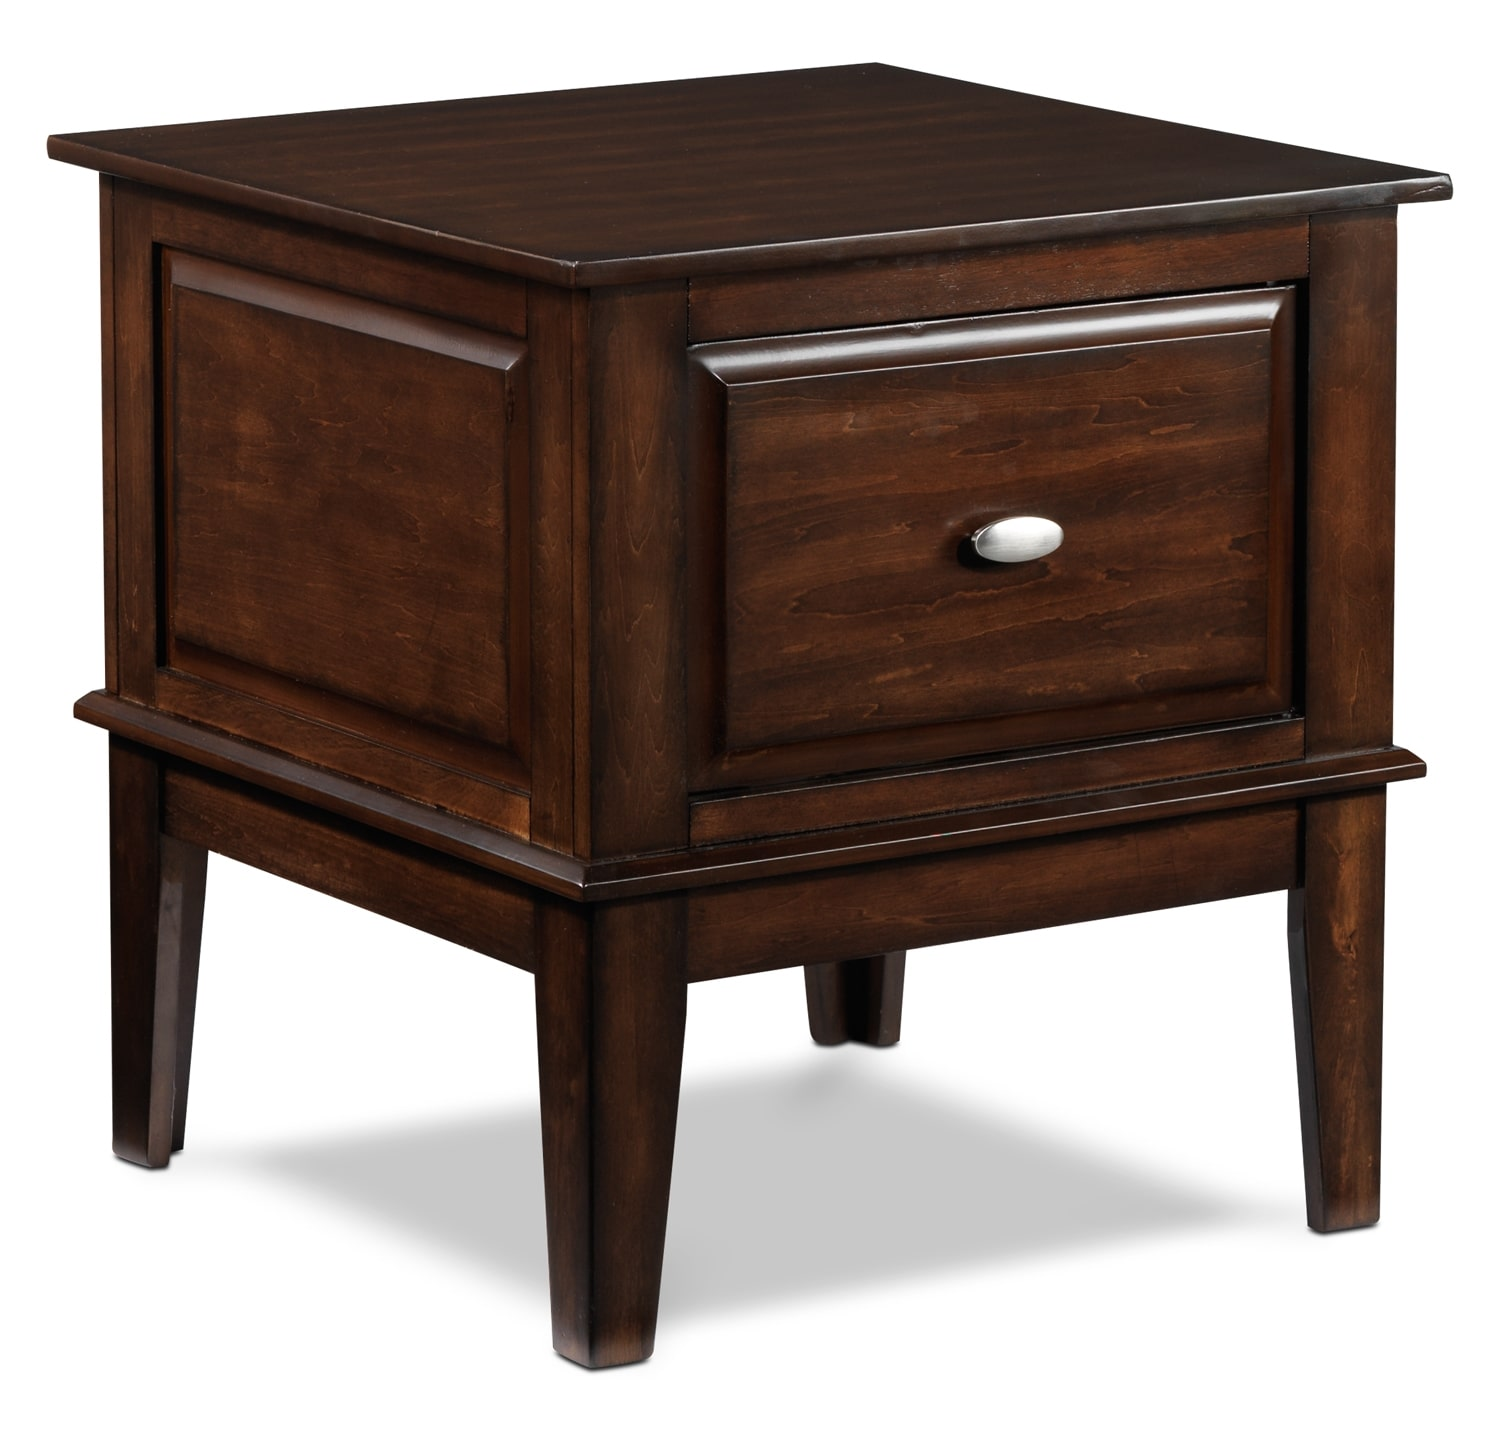 Davidoff End Table - Walnut